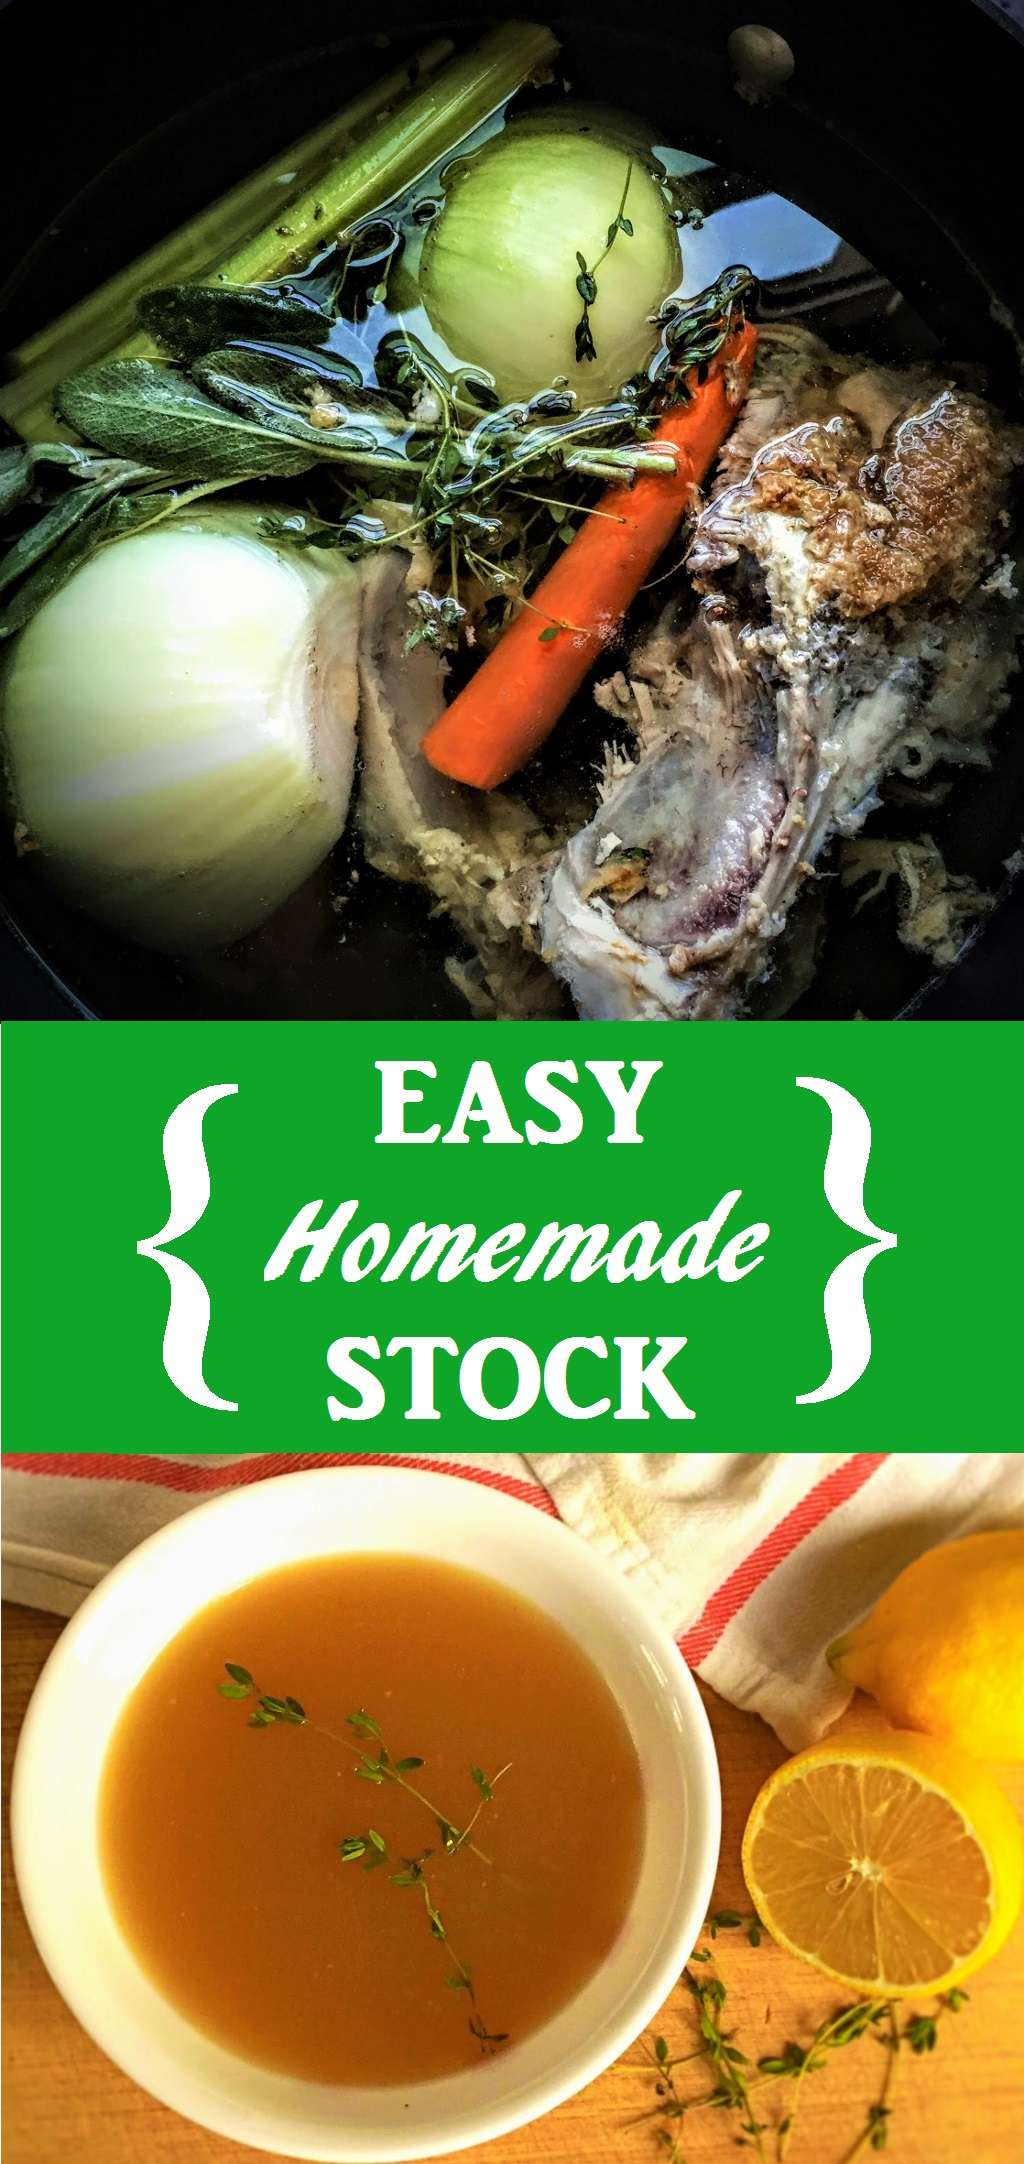 Homemade stock